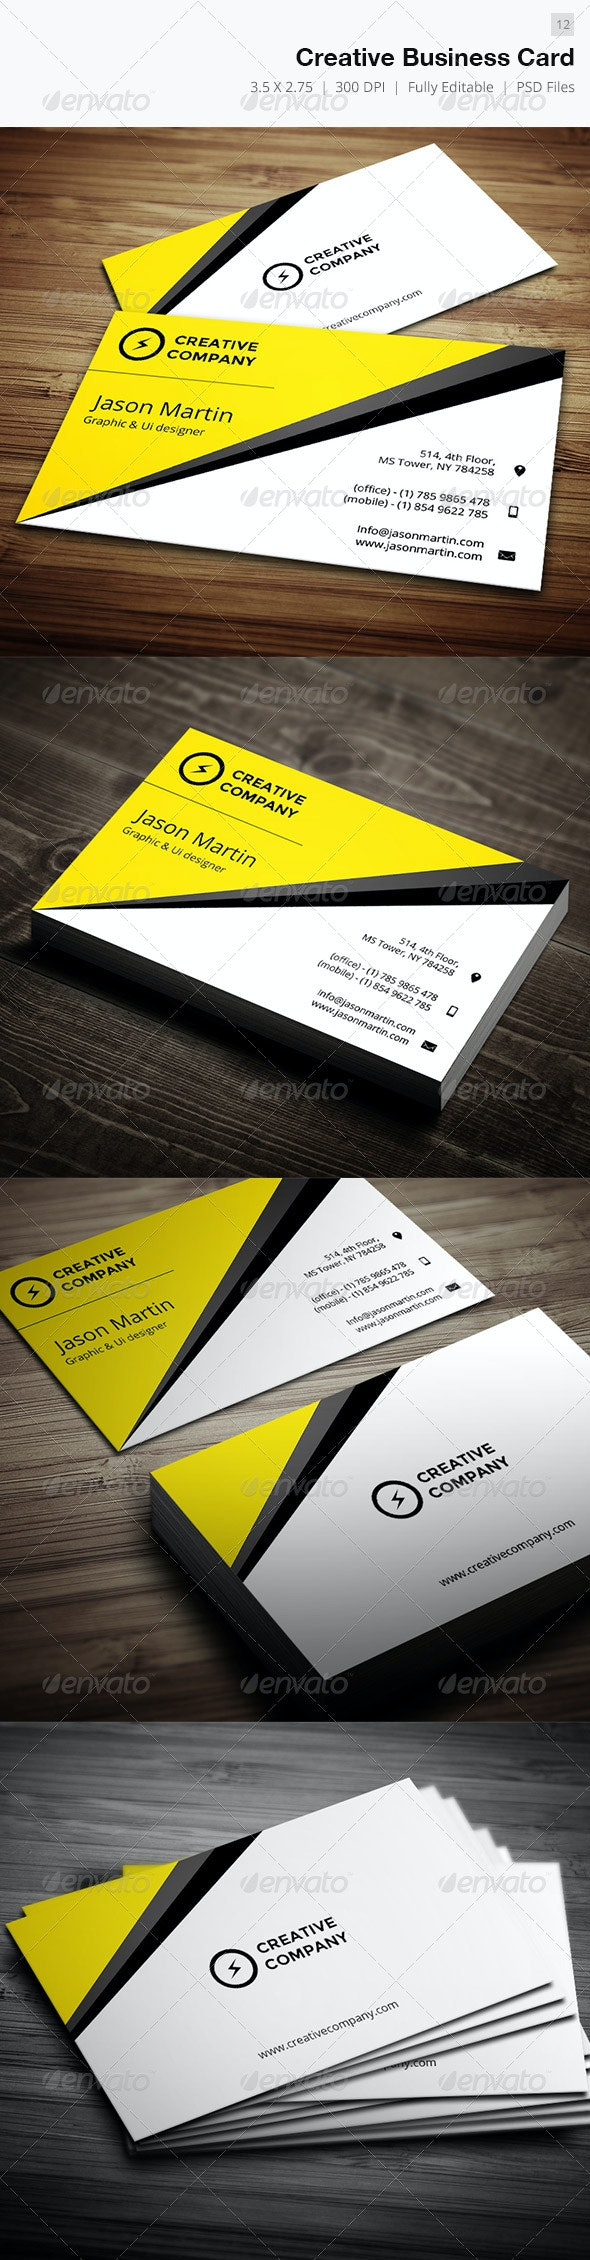 Creative Business Card - 12 - Creative Business Cards